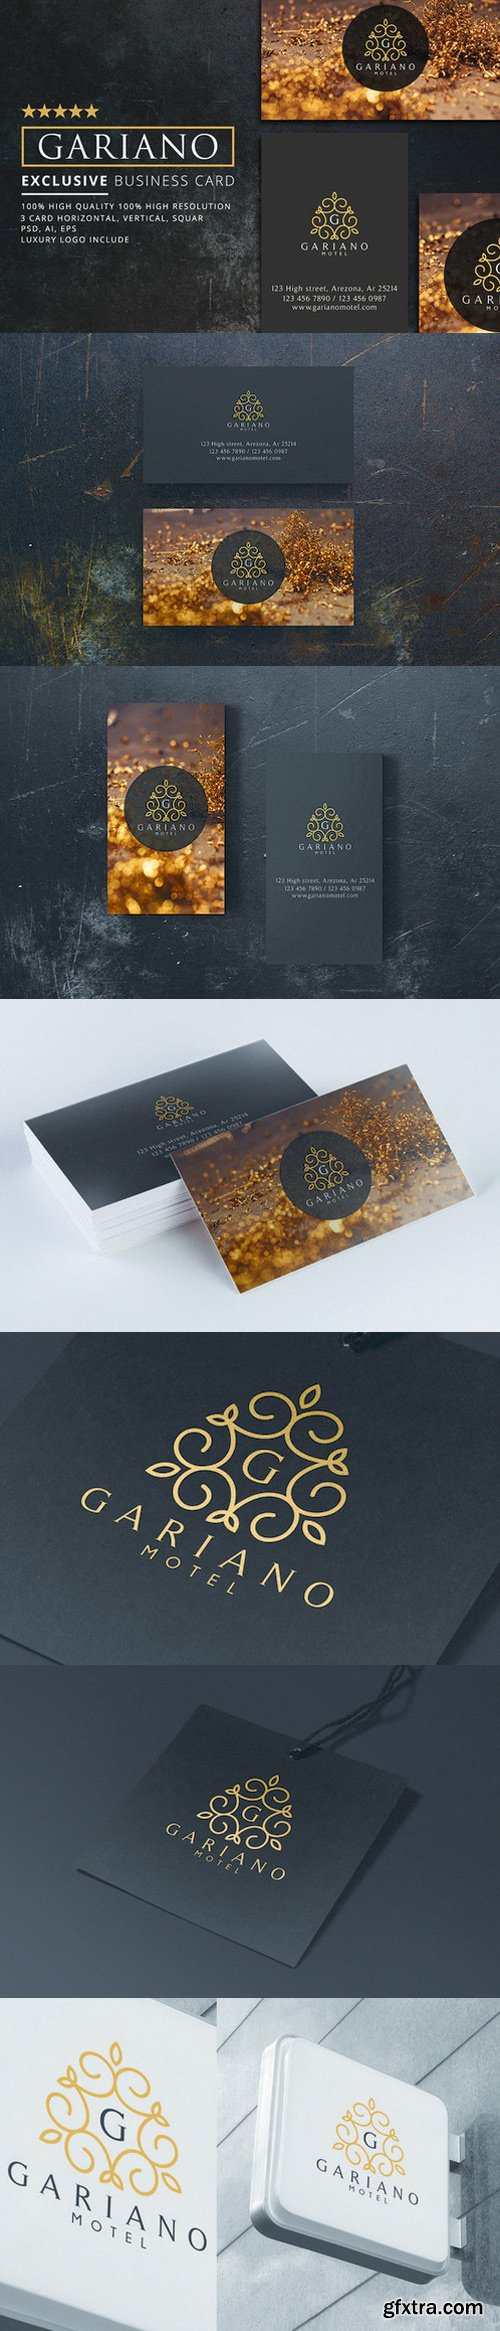 CM - Gariano Luxury Business Card 3 in 1 1015971